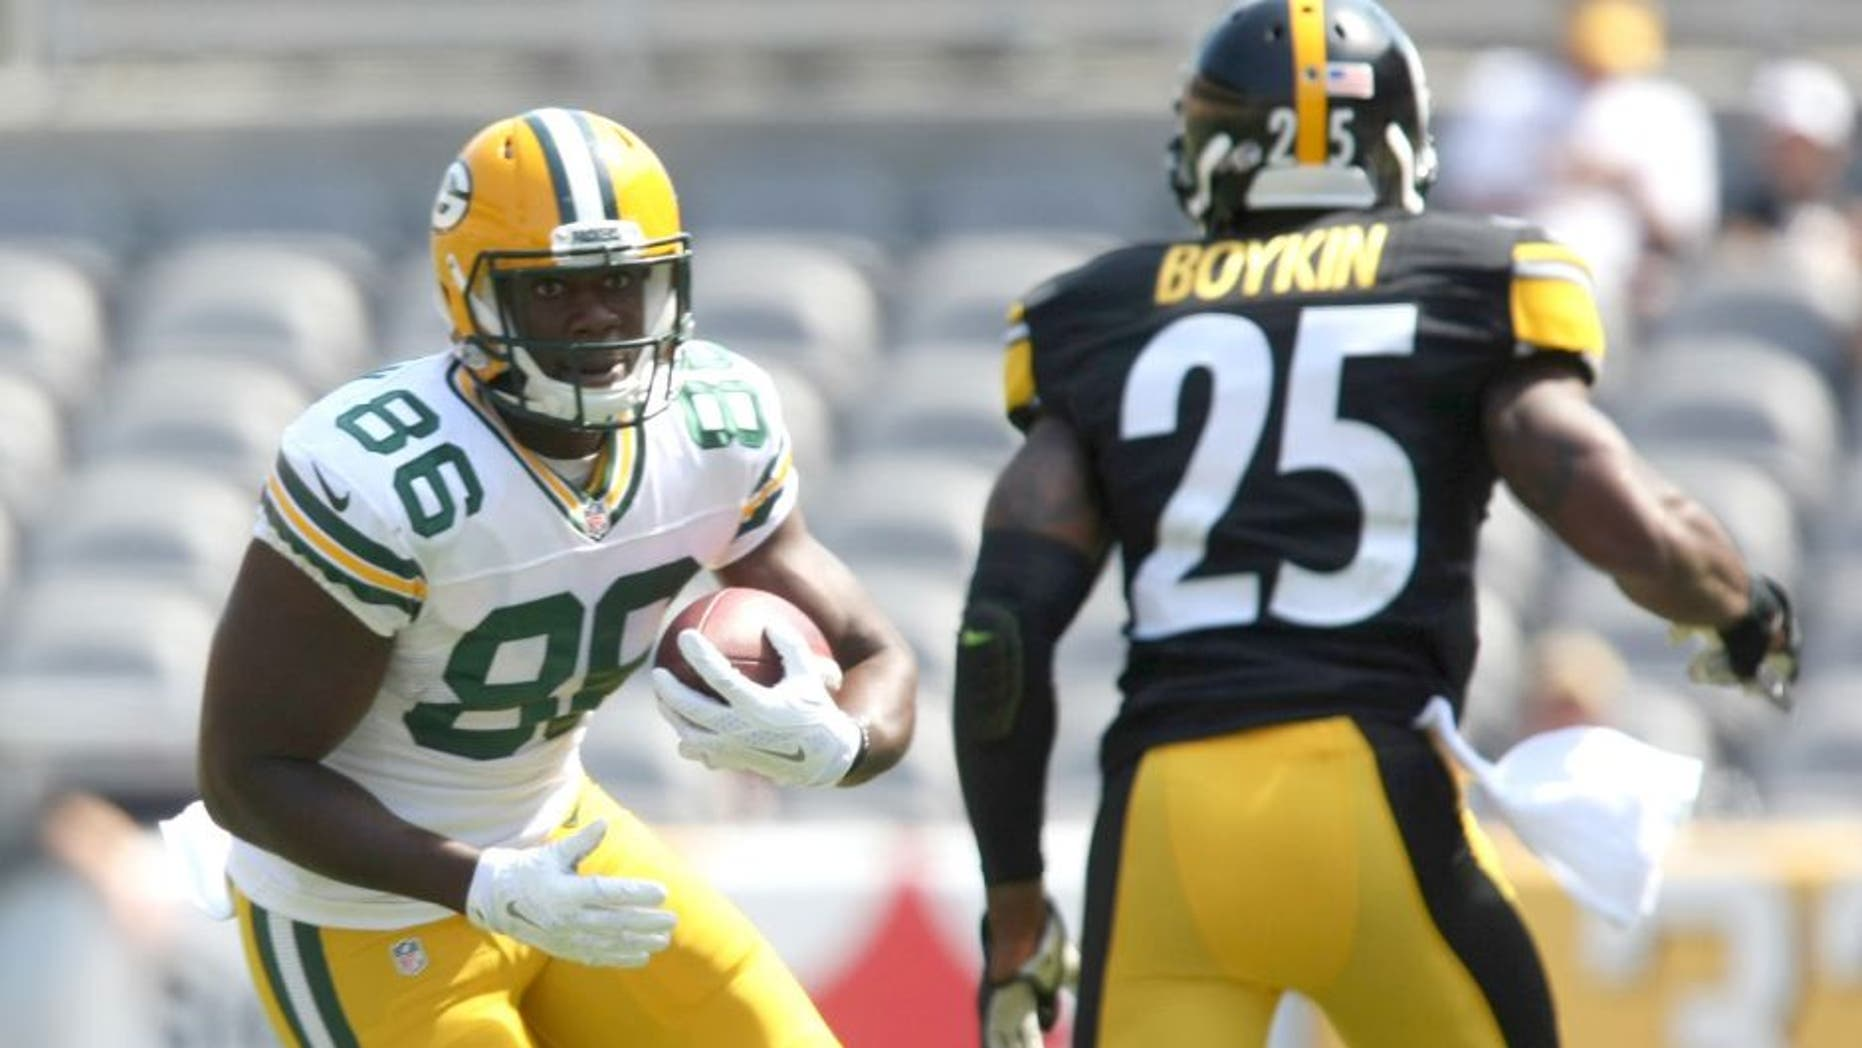 Aug 23, 2015; Pittsburgh, PA, USA; Green Bay Packers wide receiver Kennard Backman (86) runs the ball against Pittsburgh Steelers cornerback Brandon Boykin (25) during the second half of the game at Heinz Field. The Steelers won the game, 24-19. Mandatory Credit: Jason Bridge-USA TODAY Sports